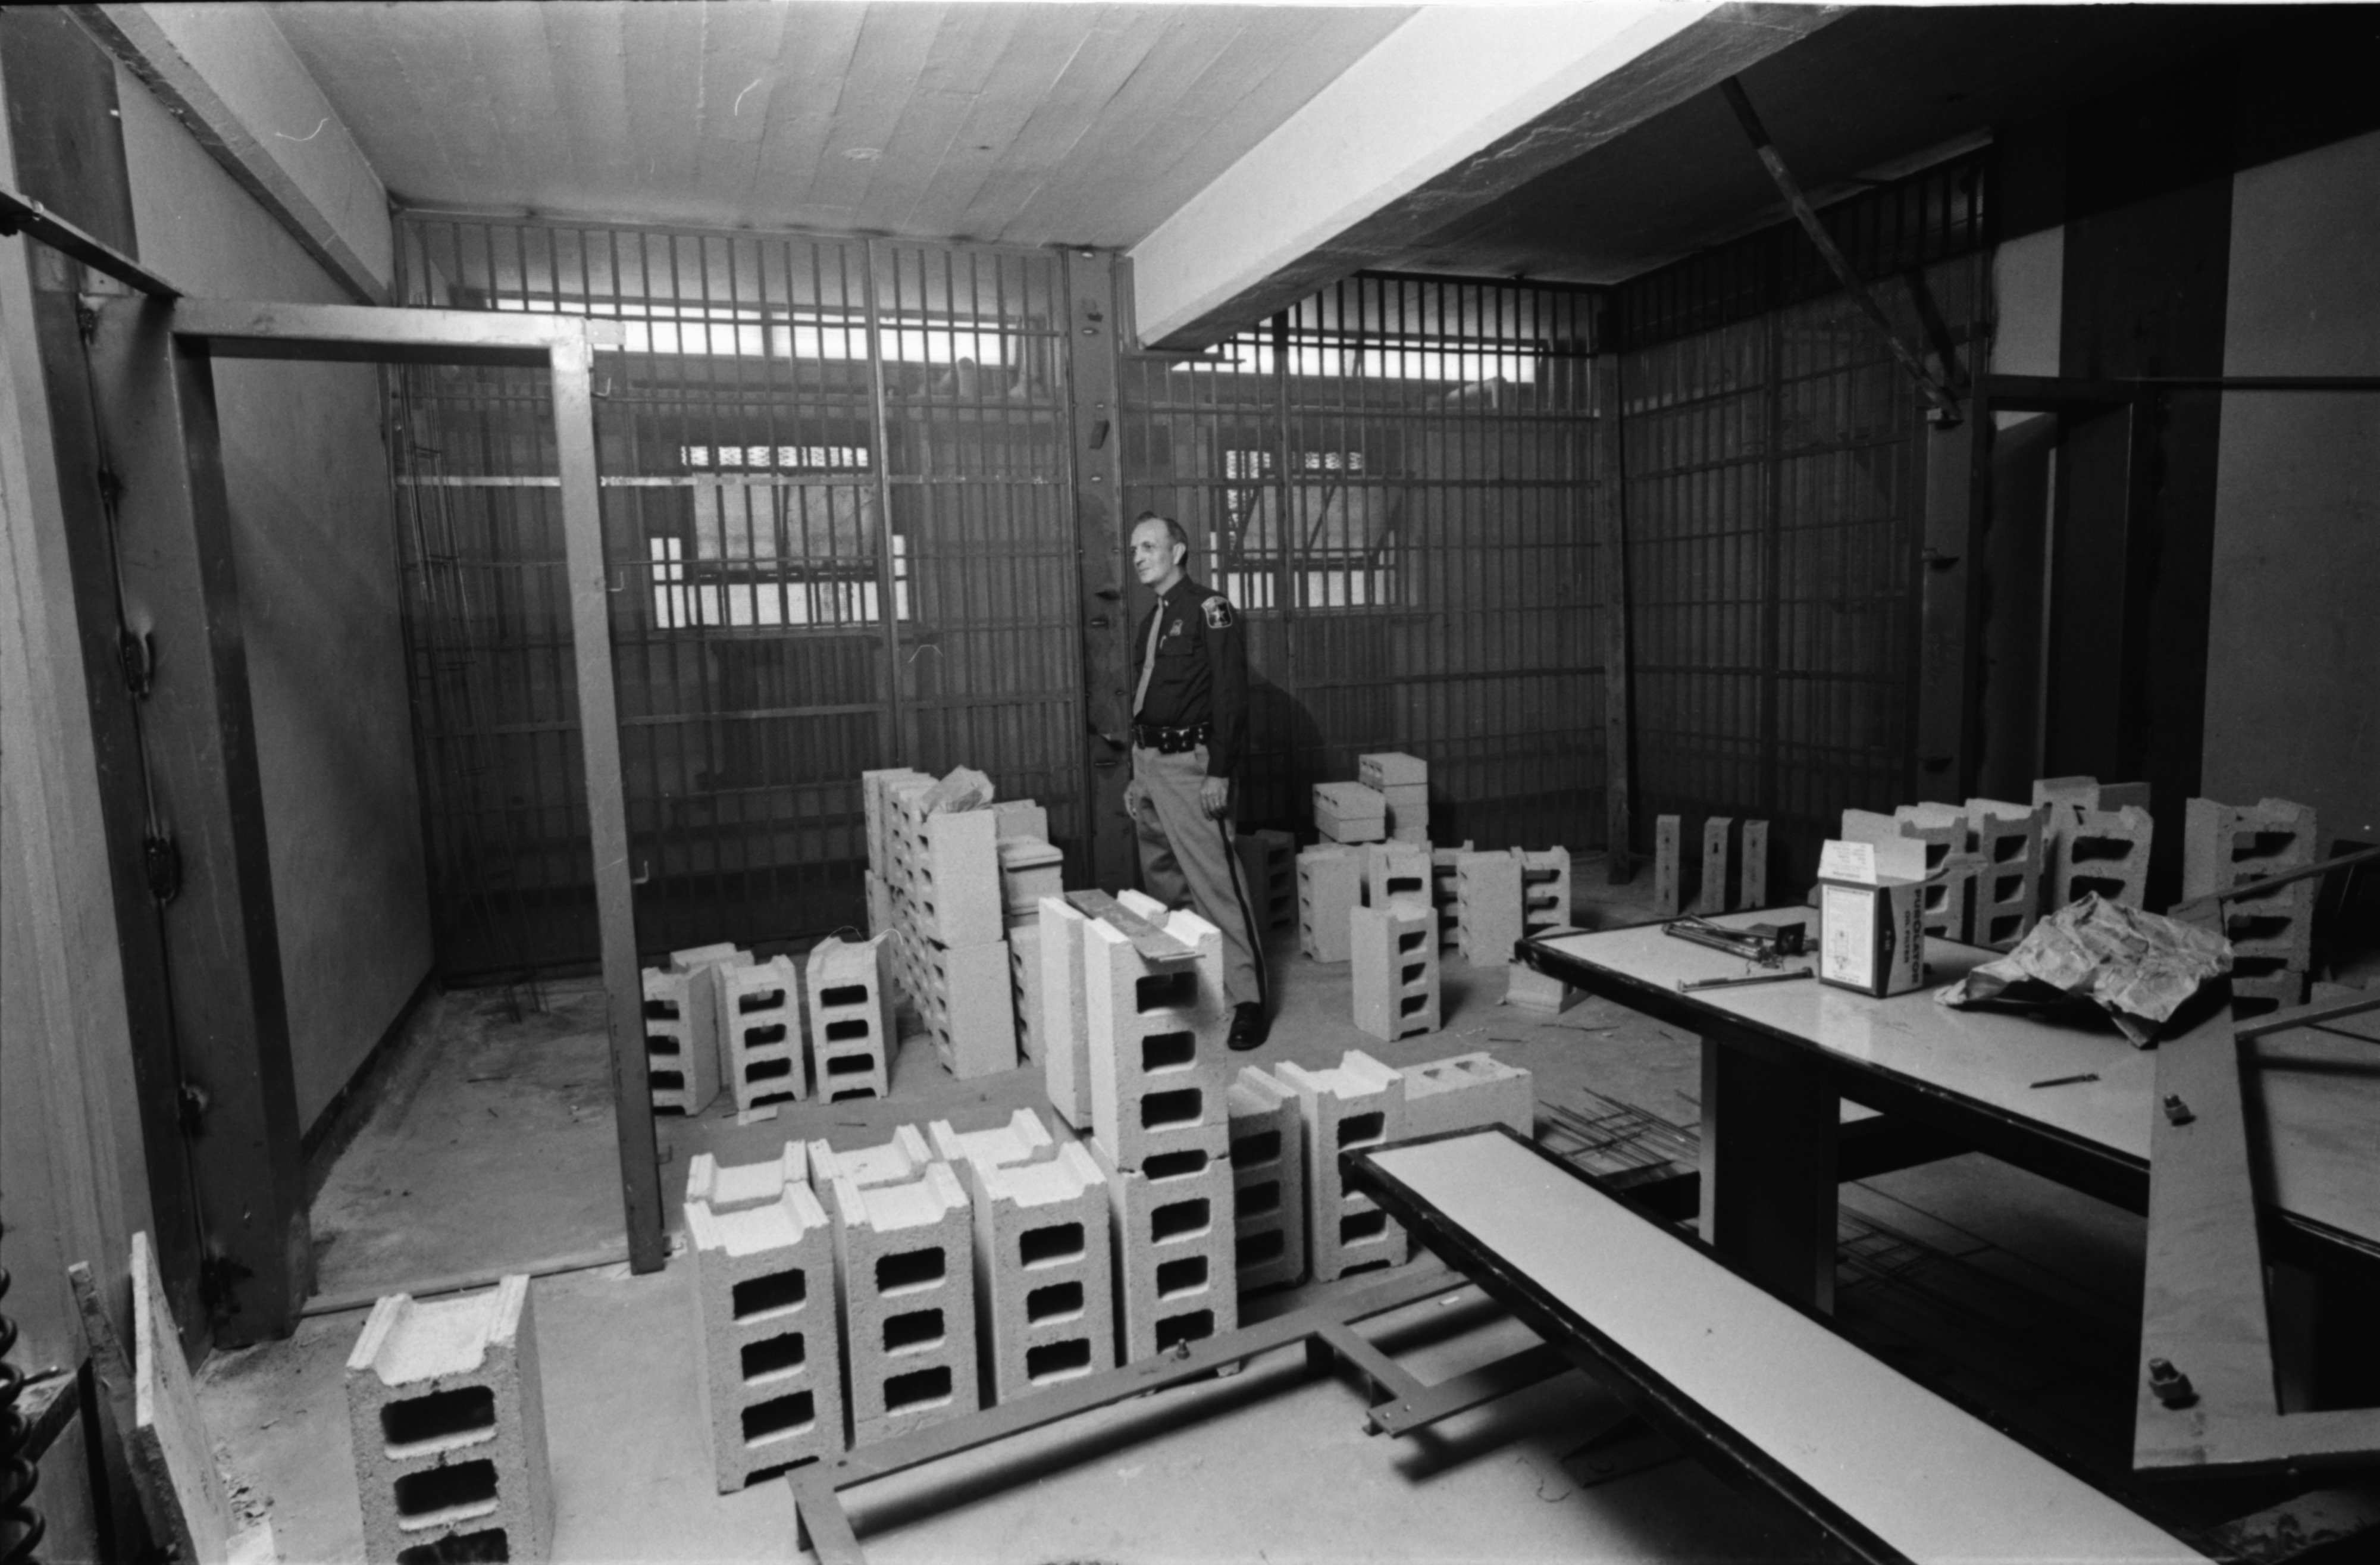 New Cells at County Jail, October 1968 image